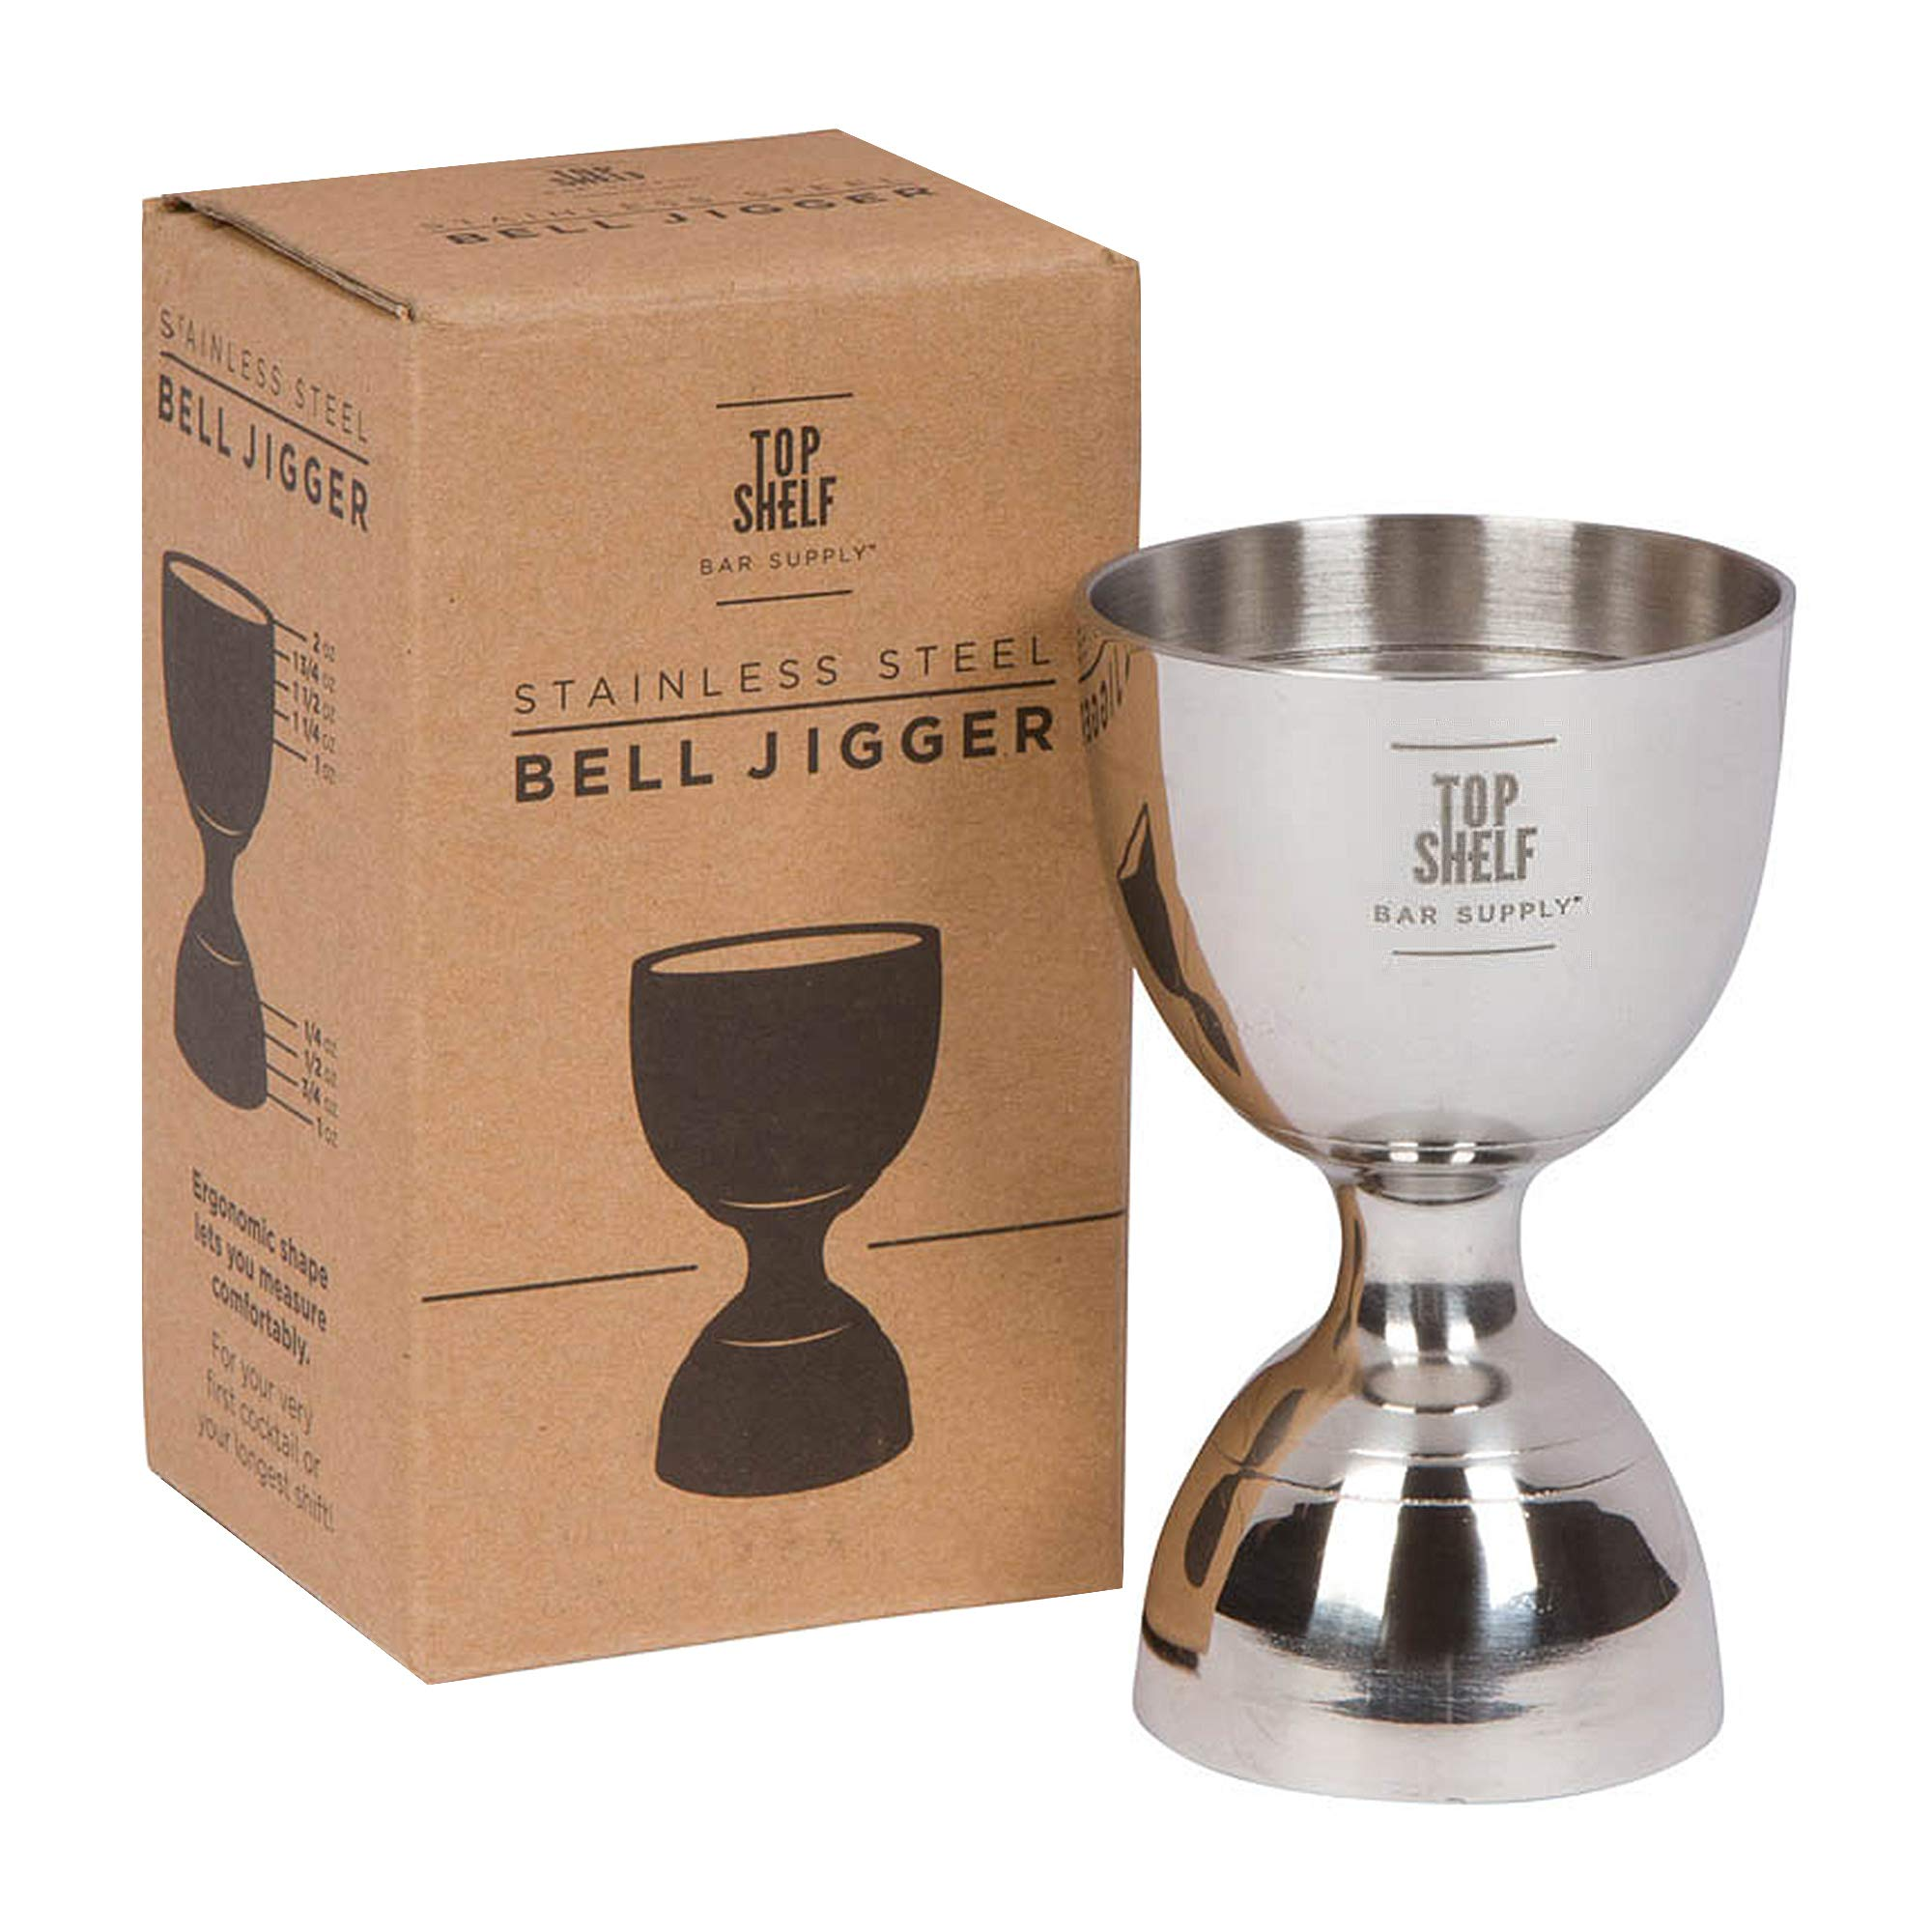 Bell Jigger - Premium Vintage Double Cocktail Jigger, 1oz/2oz made from Stainless Steel 304 by Top Shelf Bar Supply